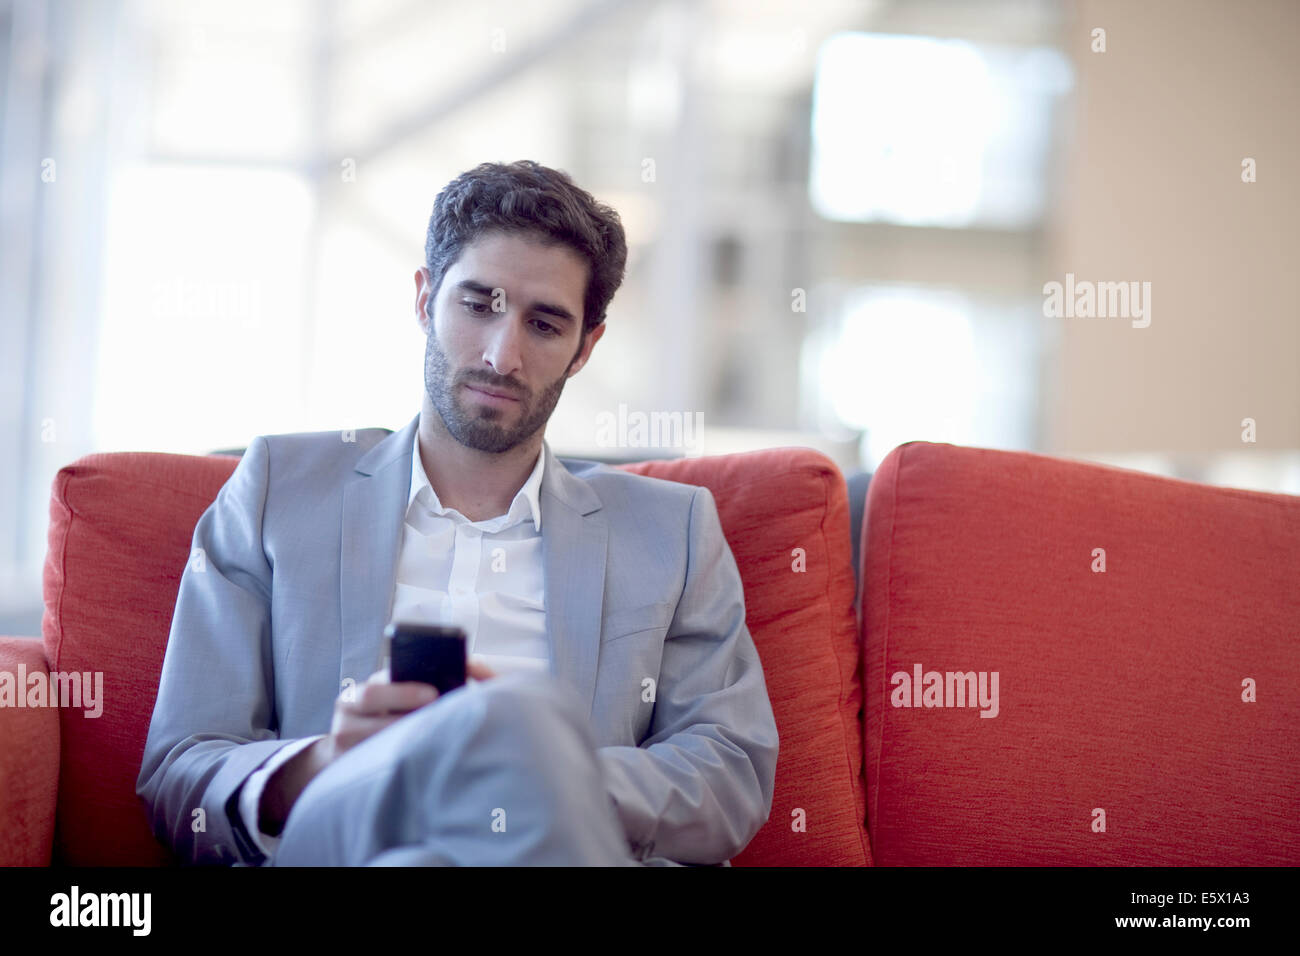 Young businessman smartphone texting on sofa in conference centre - Stock Image